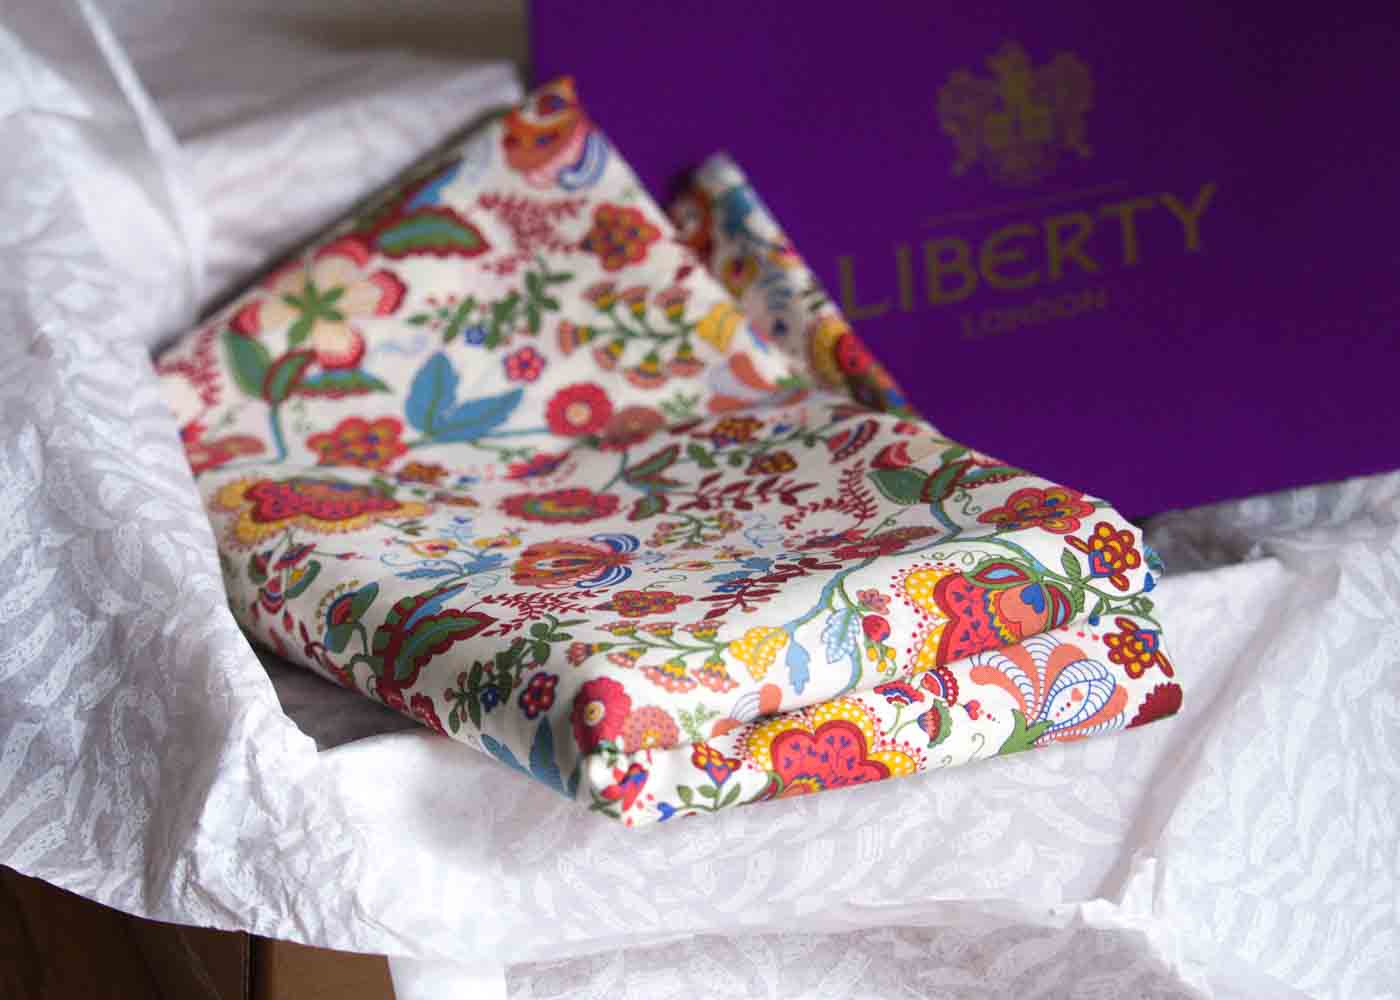 Fabric from Liberty of London: a lovely gift for the needle wielding genius in your life.